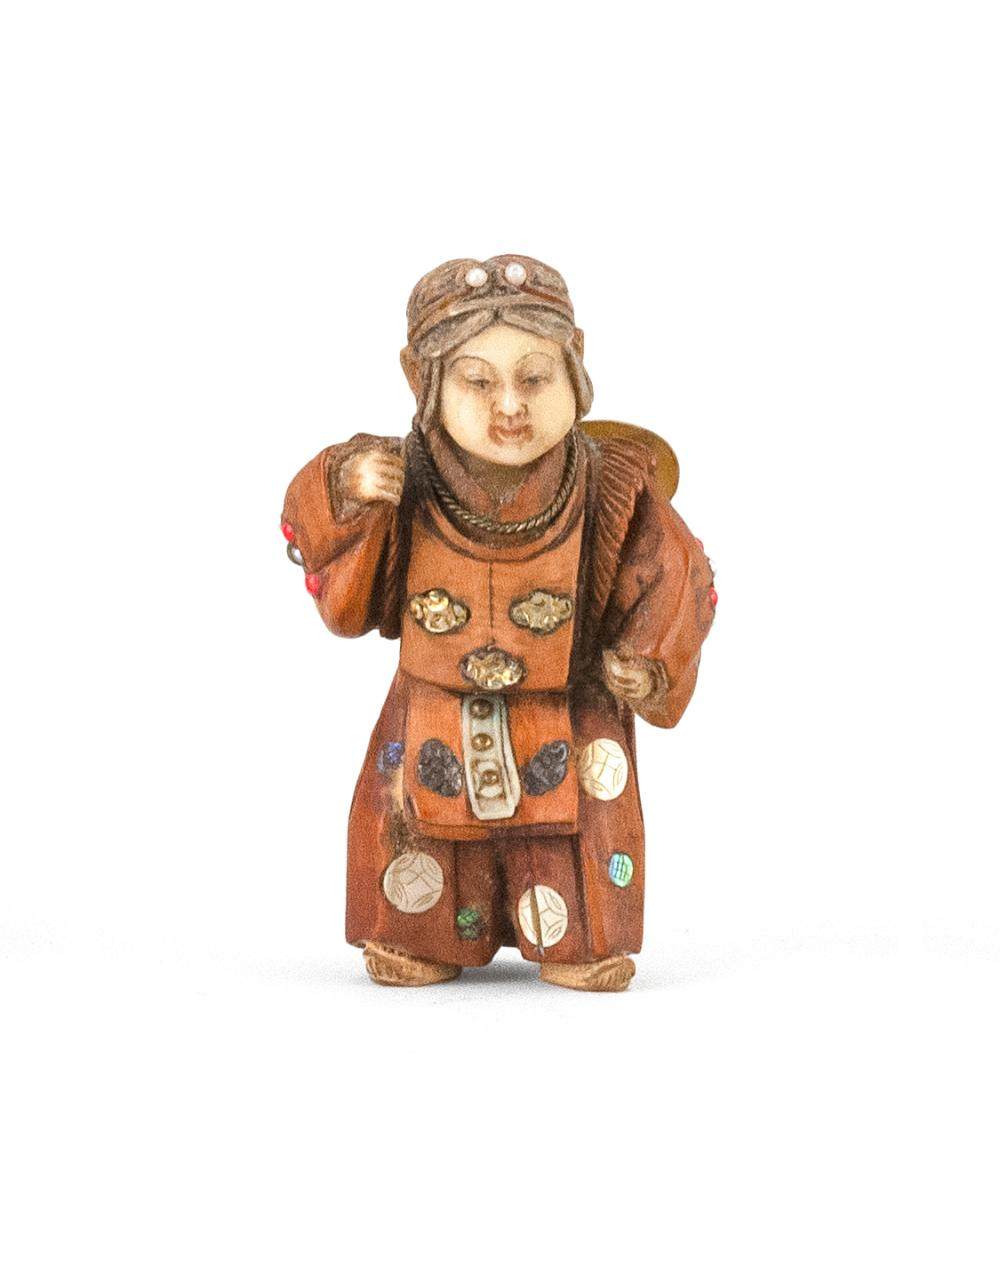 JAPANESE INLAID WOOD NETSUKE In the form of a butterfly dancer, with mother-of-pearl, gold, coral, bone and lapis lazuli inlay. Repl...